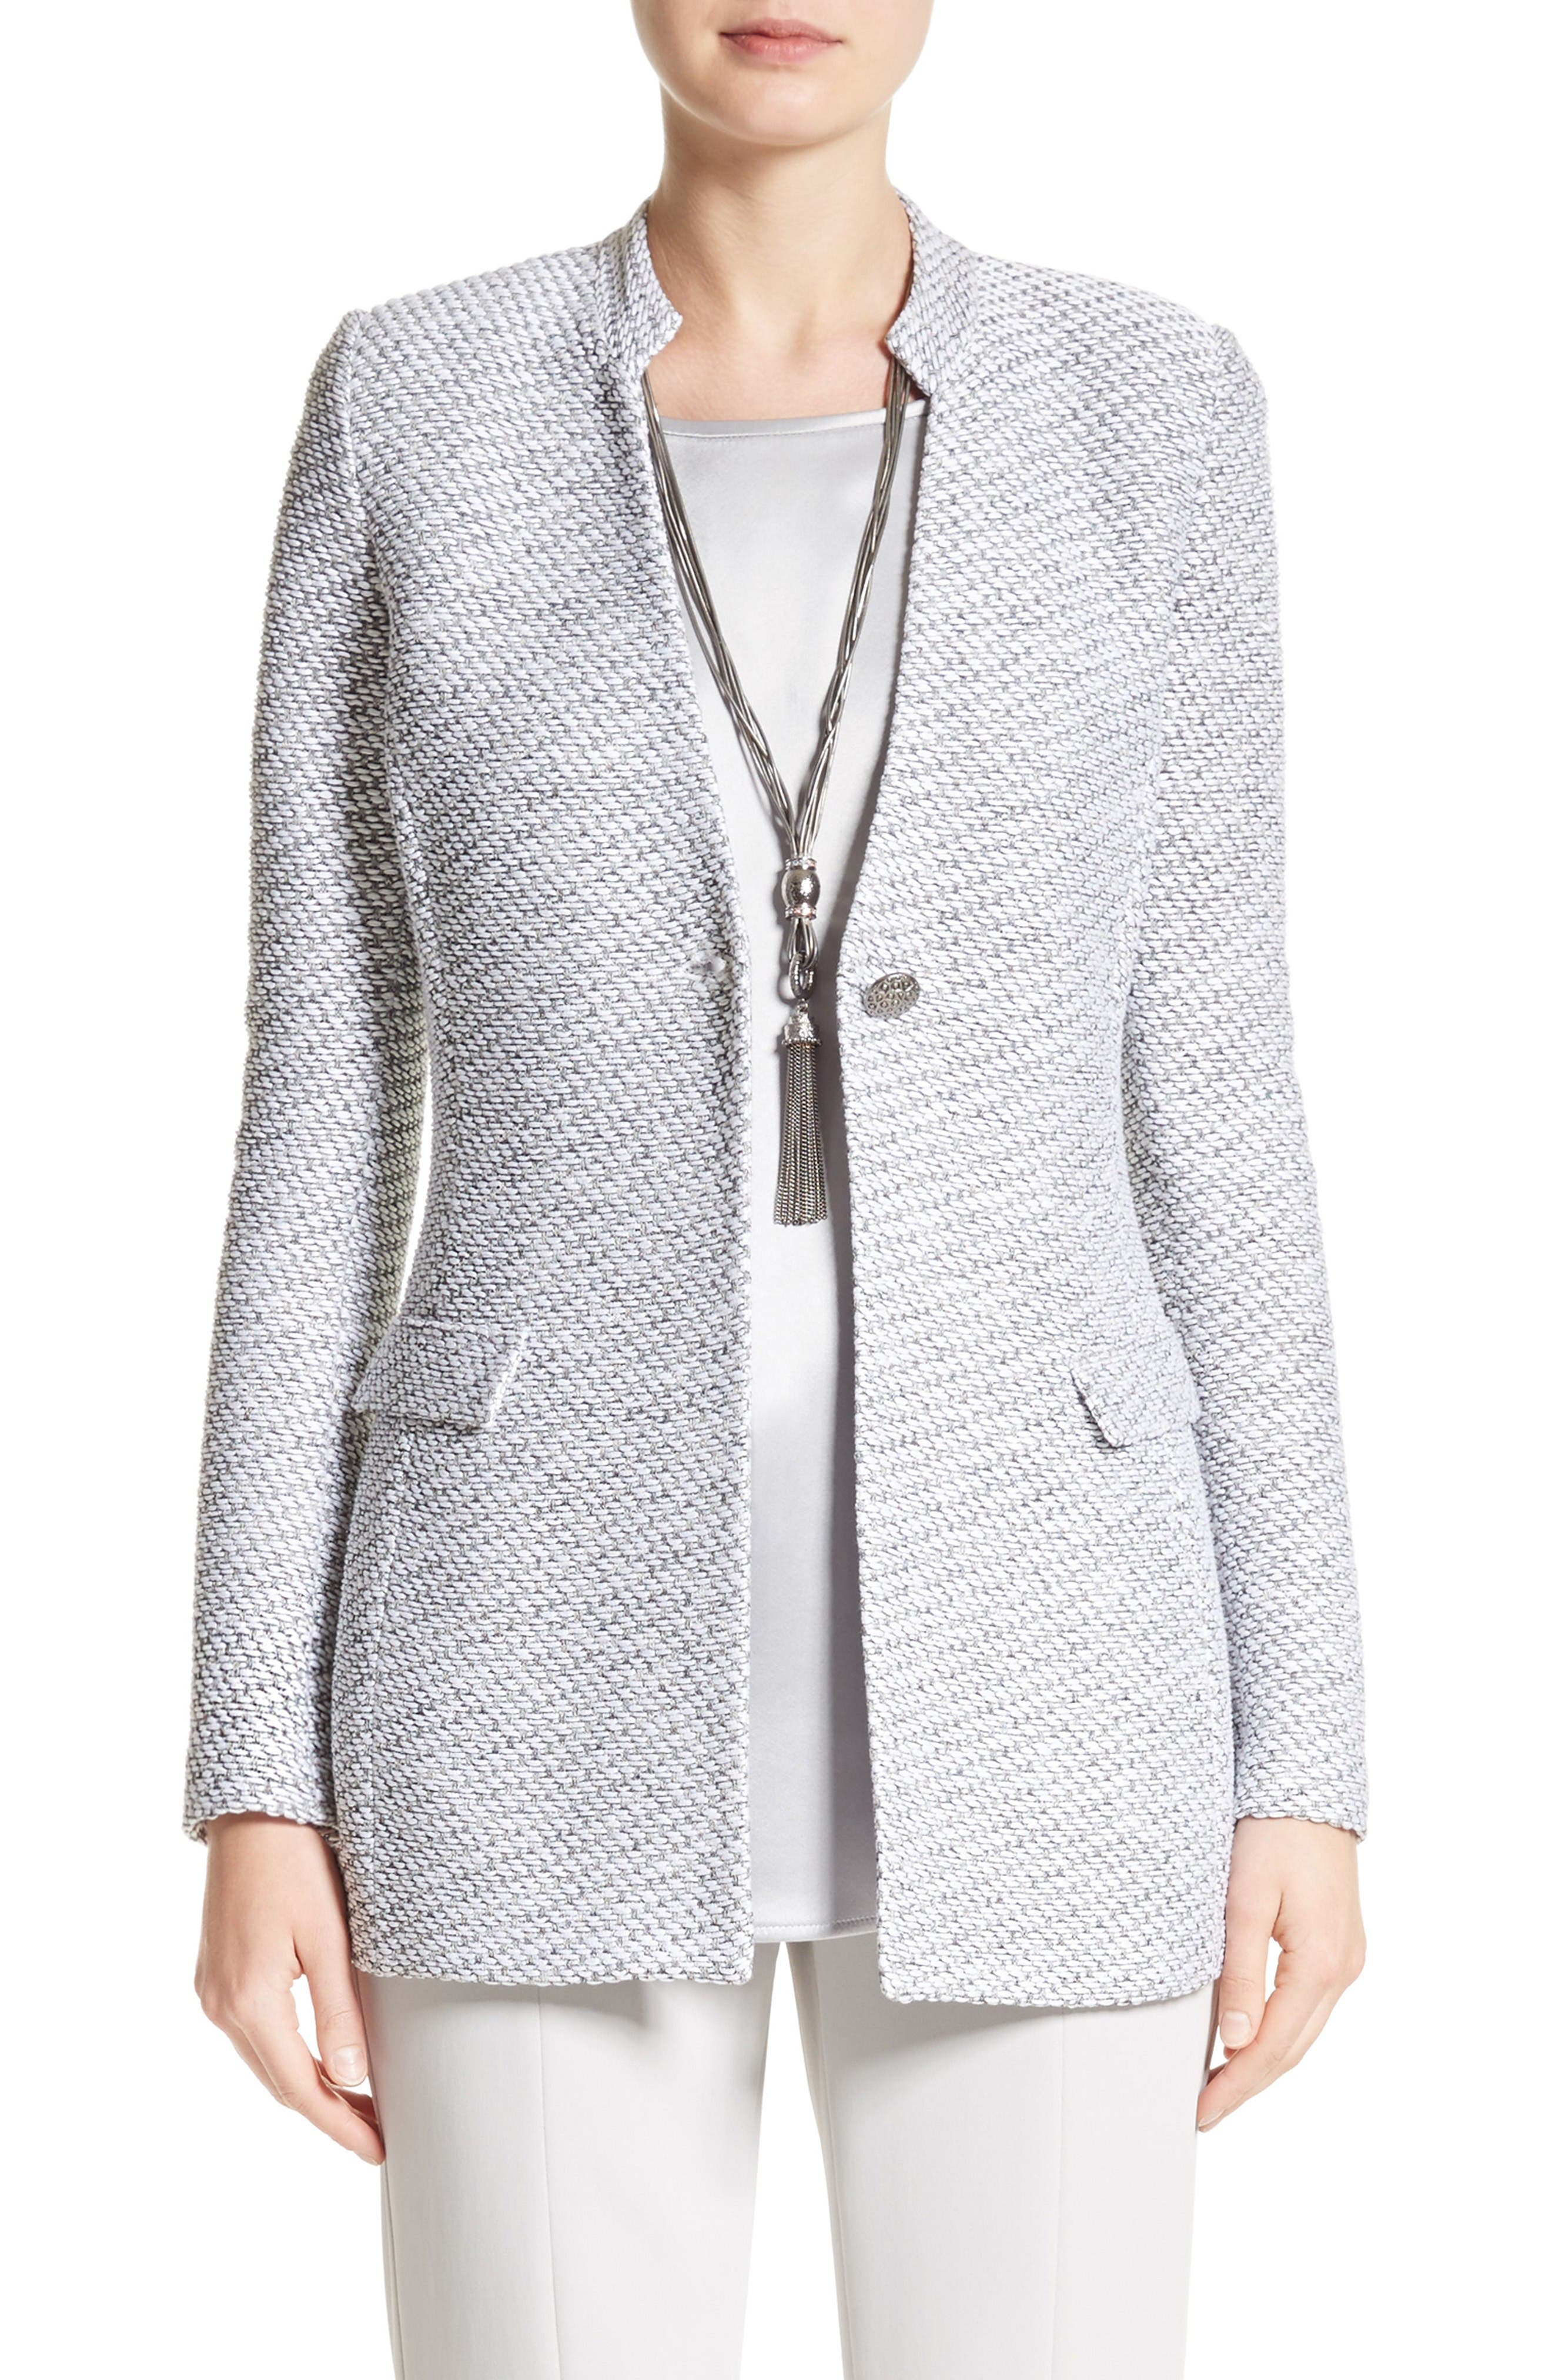 Gyan Knit Jacket,                         Main,                         color, Bianco/ Mica Multi